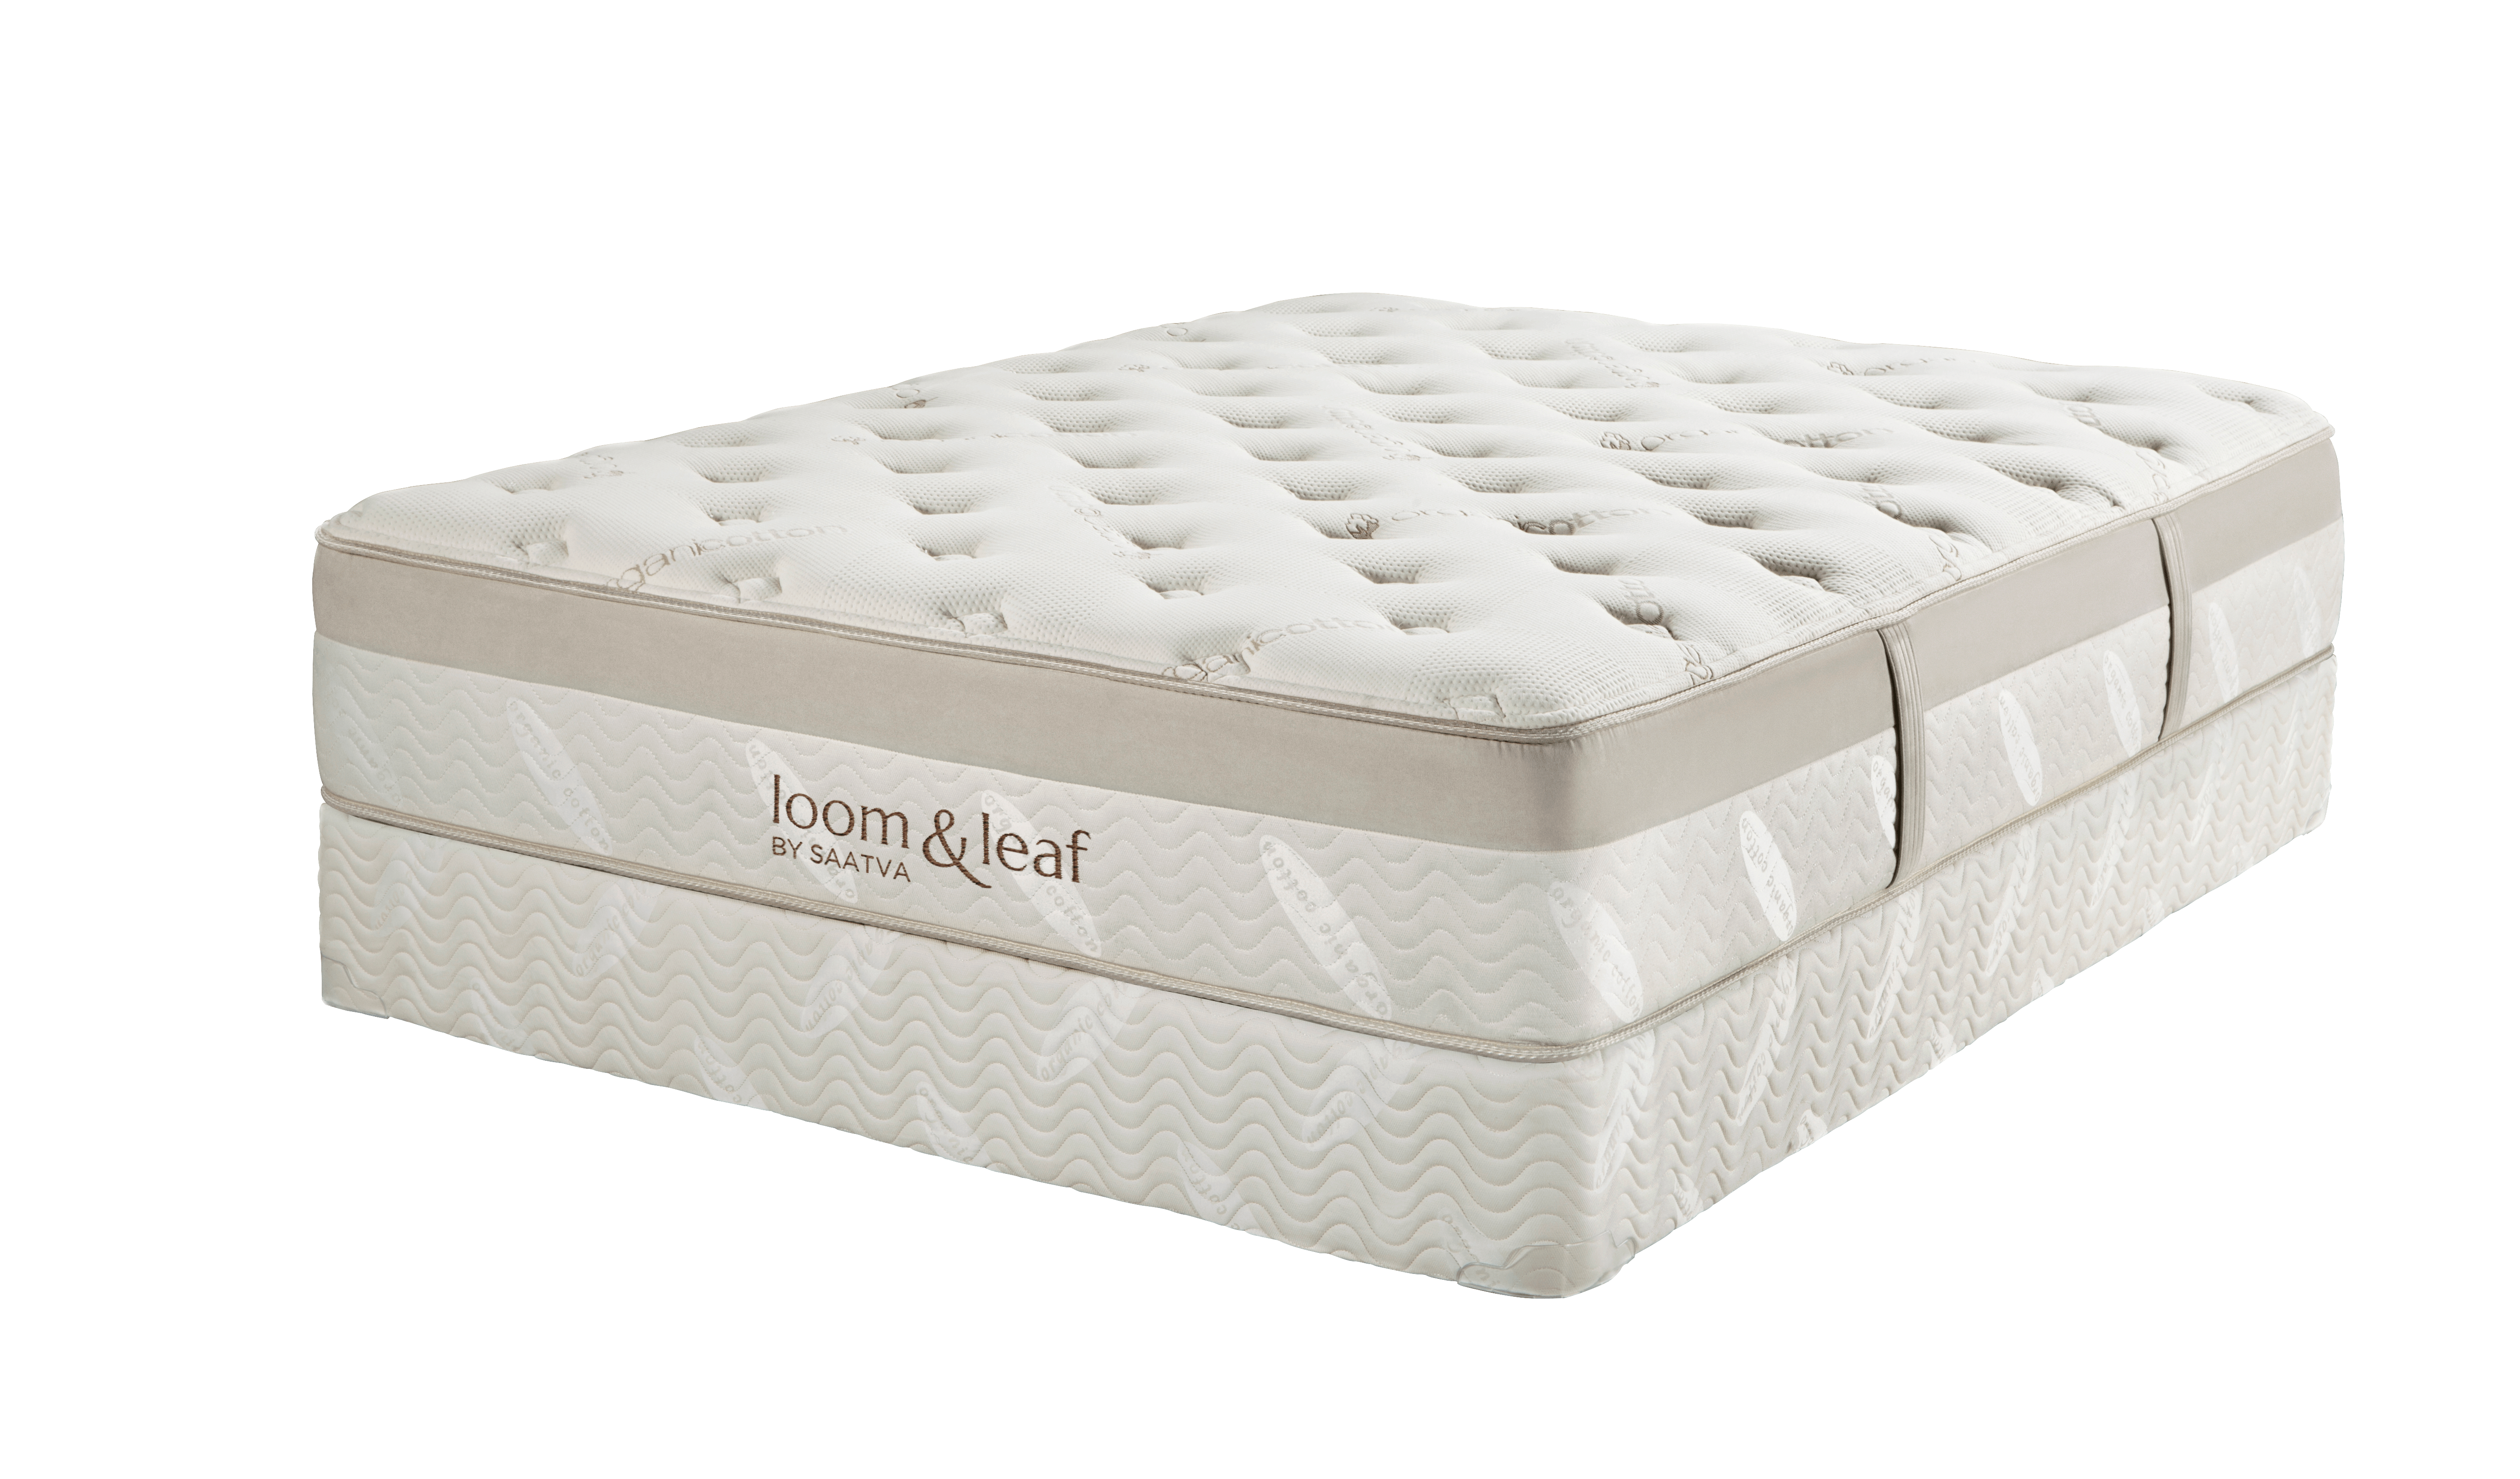 Helix Vs Loom And Leaf Loom And Leaf Mattress Review Does It Beat Tempurpedic